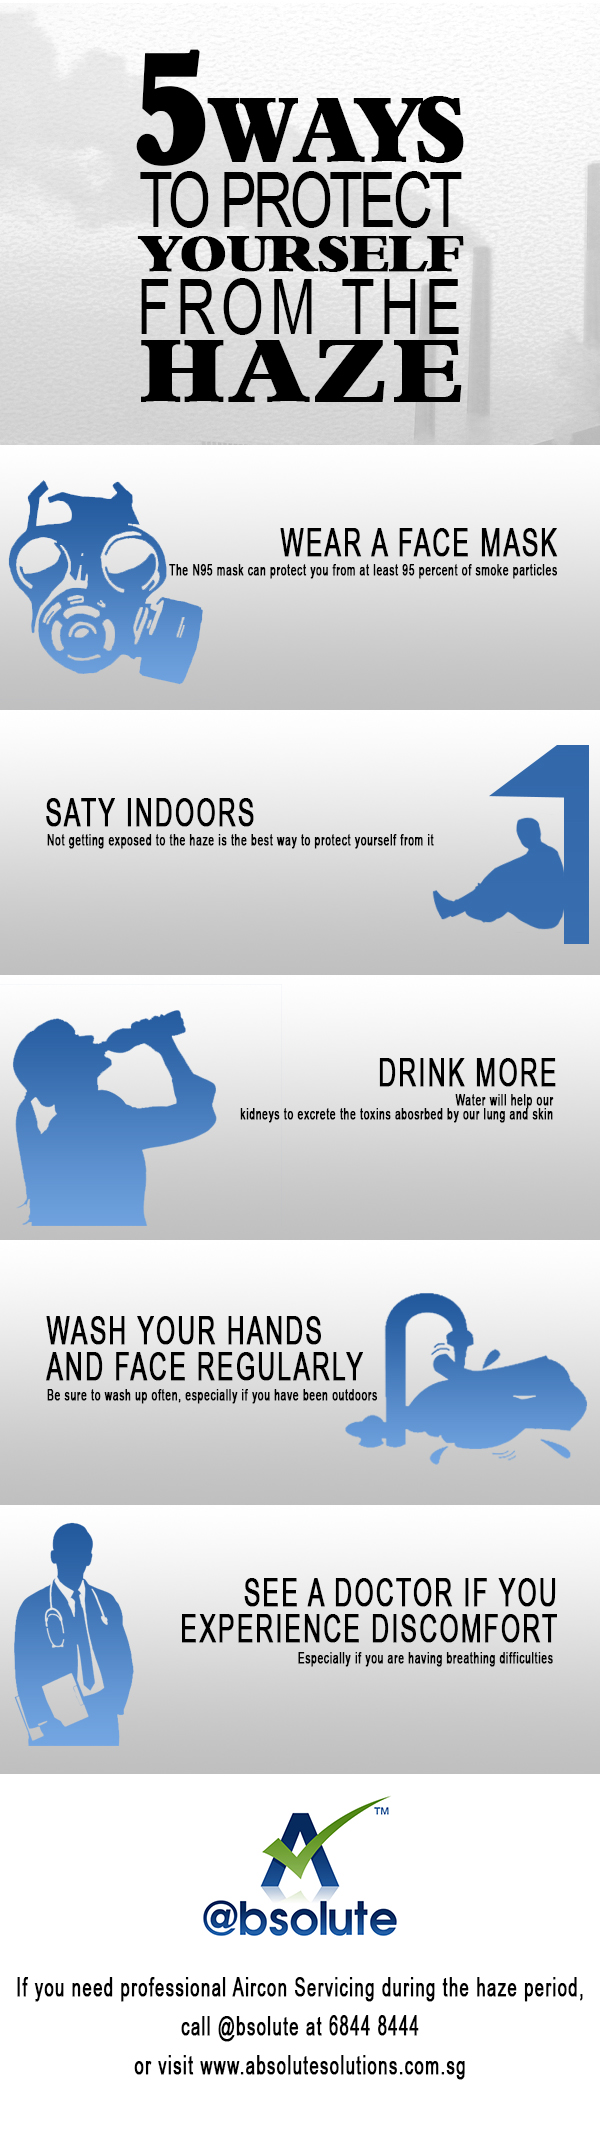 http://www.absolutesolutions.com.sg/images/5-ways-to-protect-yourself-from-haze-infographic.jpg